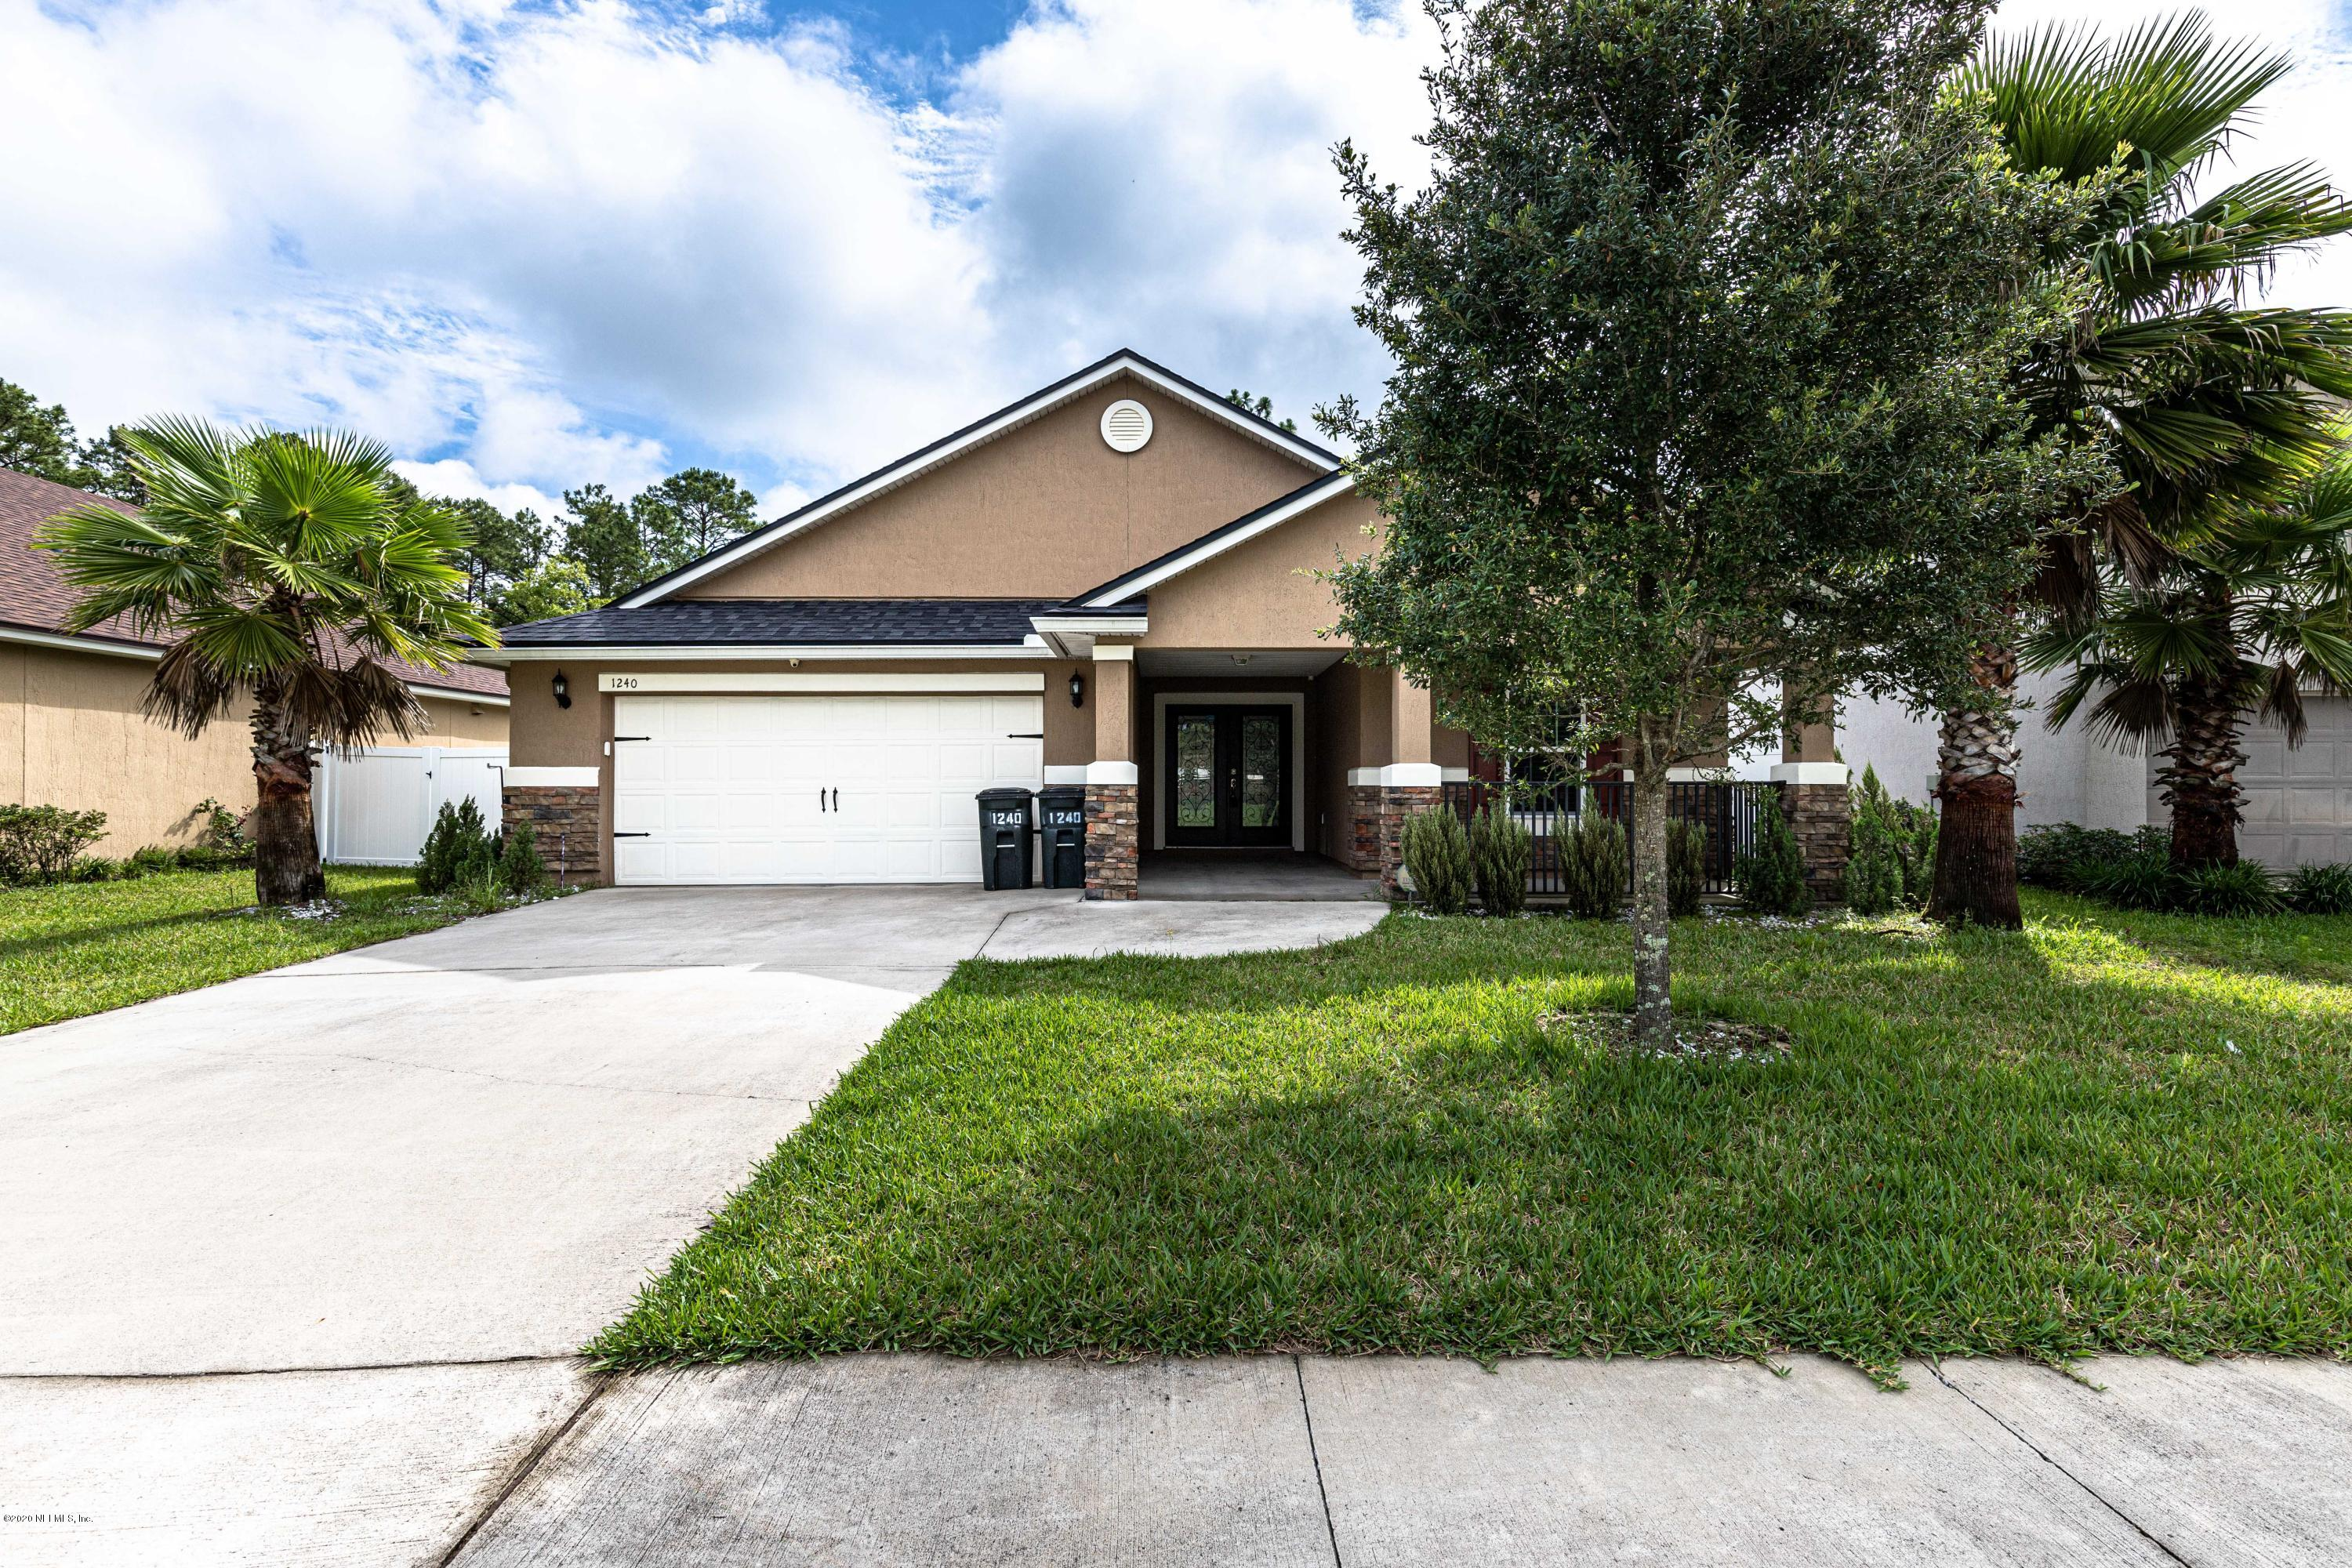 Details for 1240 Wetland Ridge Cir, MIDDLEBURG, FL 32068